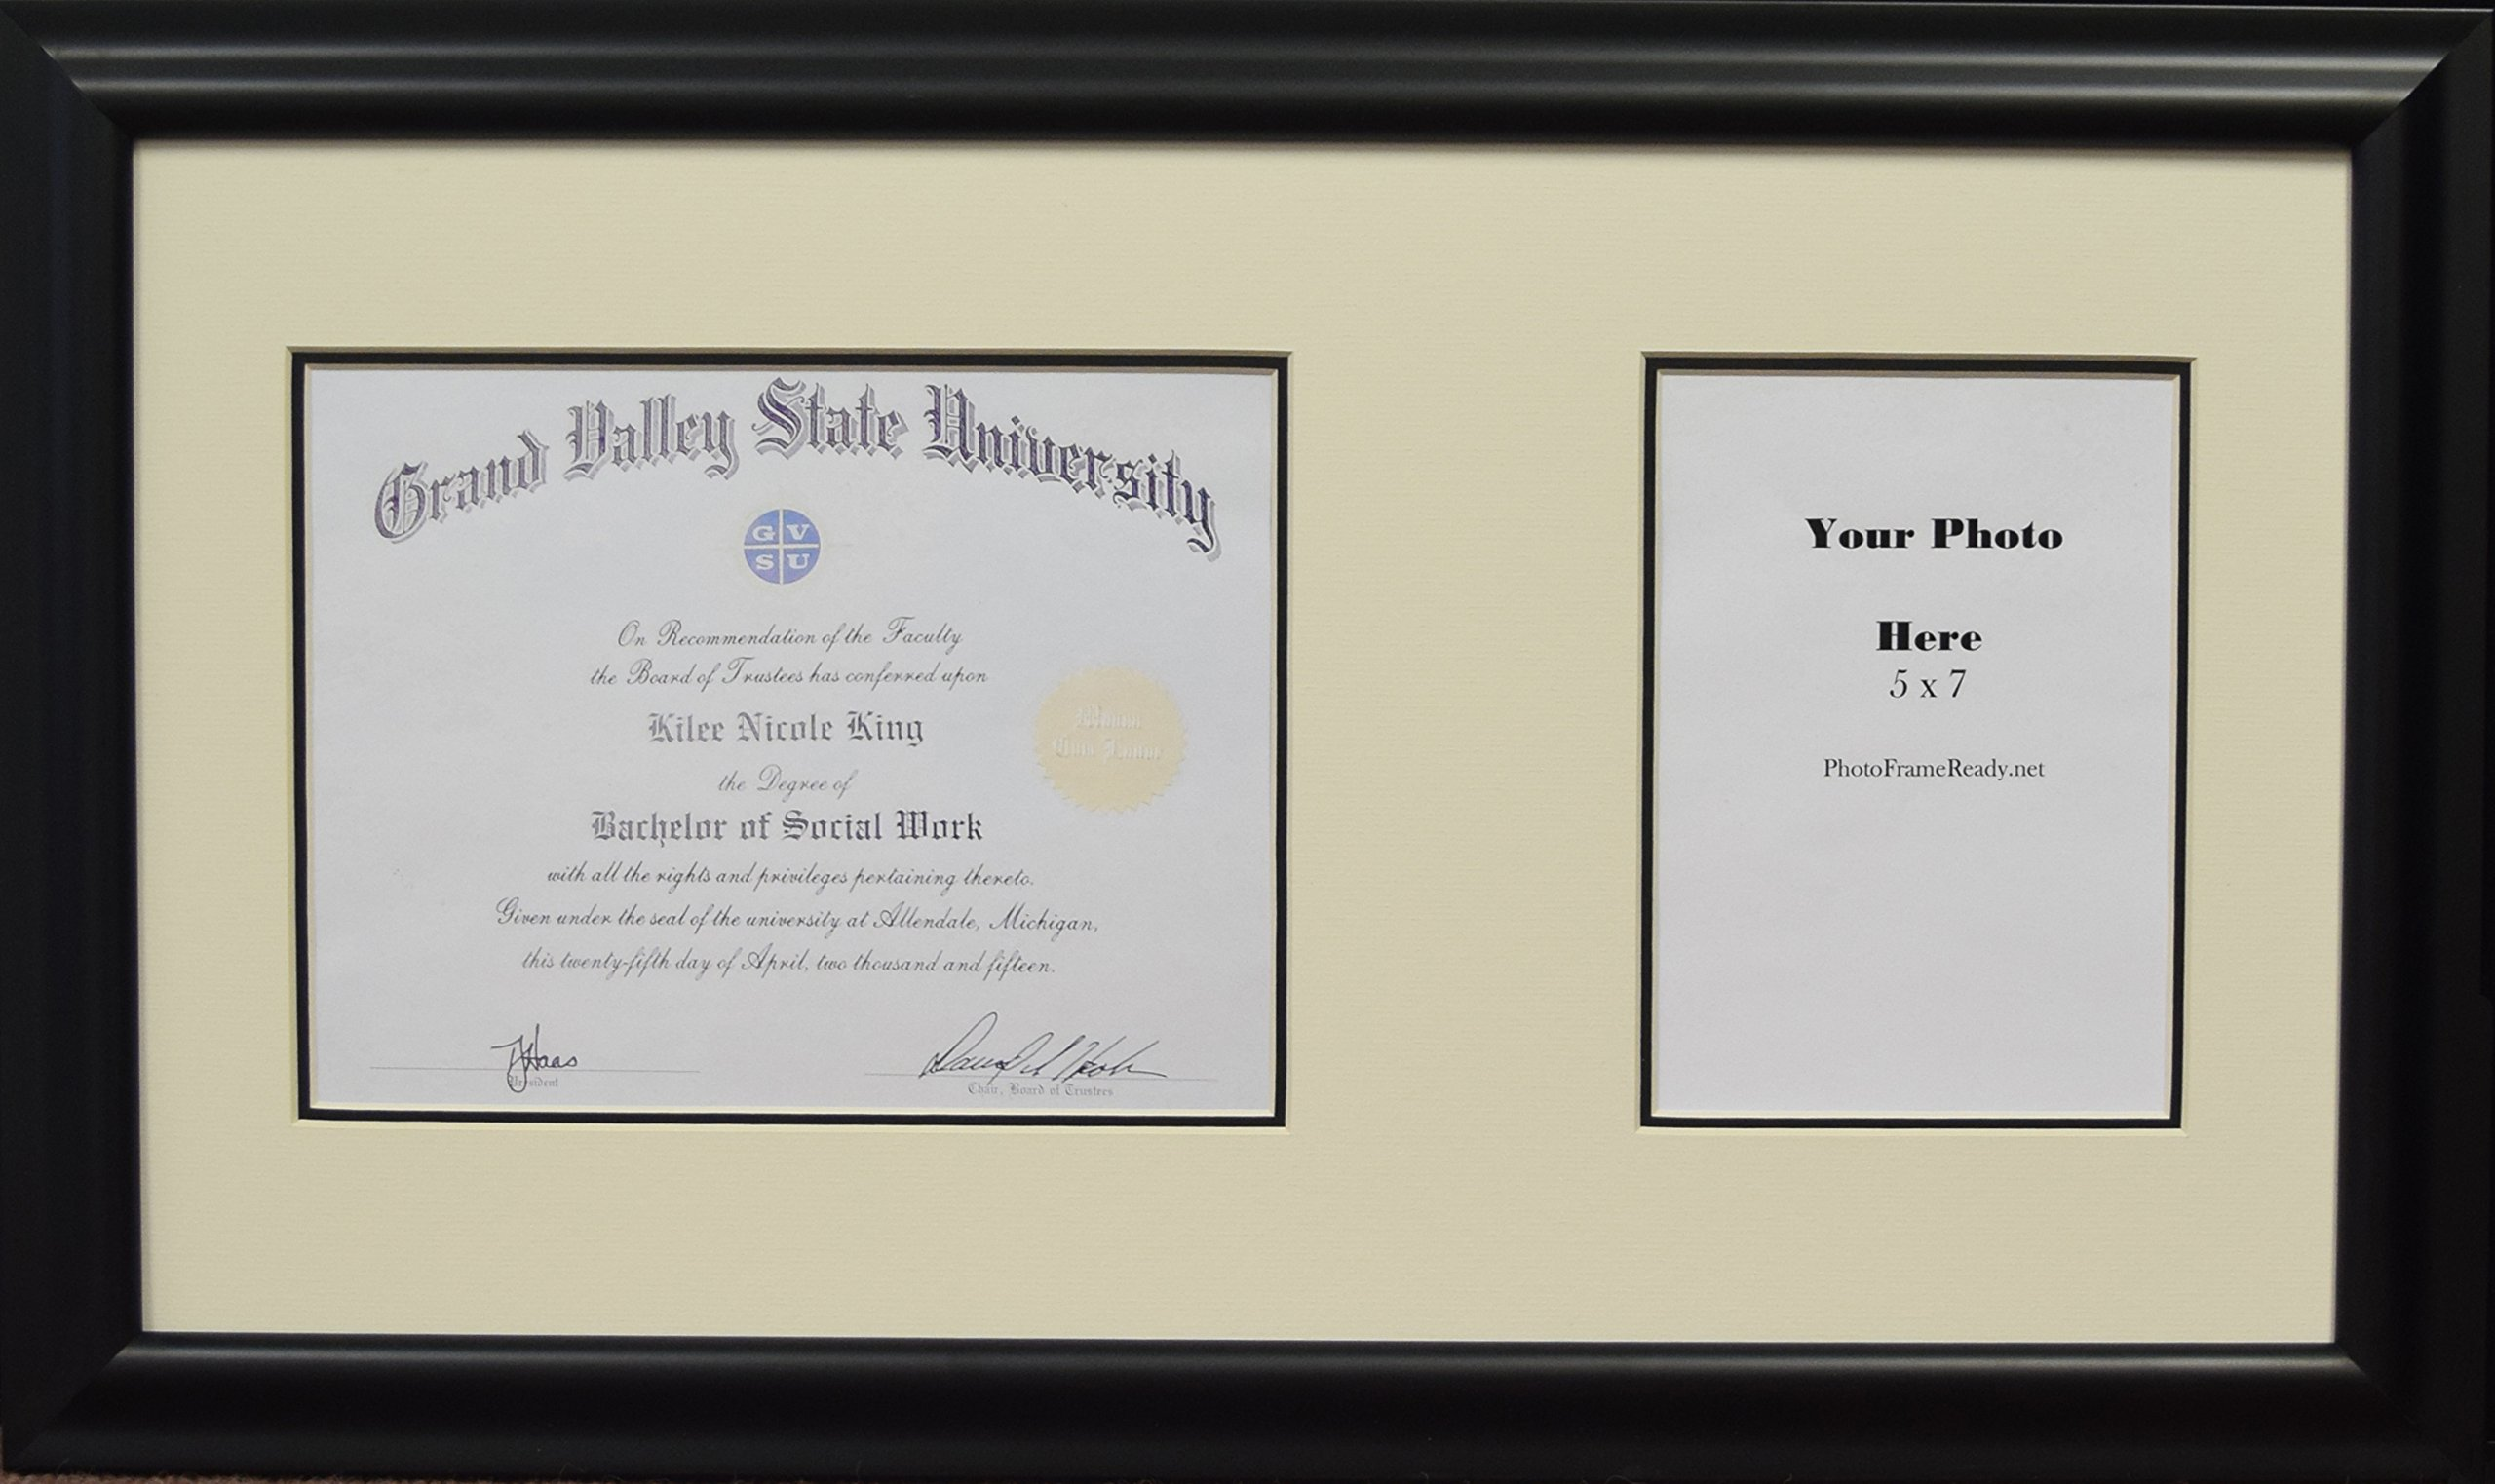 Graduation University Diploma Document Certificate Photo Frame Creme and Black Mats Holds 9x7 Certificate with 5x7 Photo Opening Black Frame